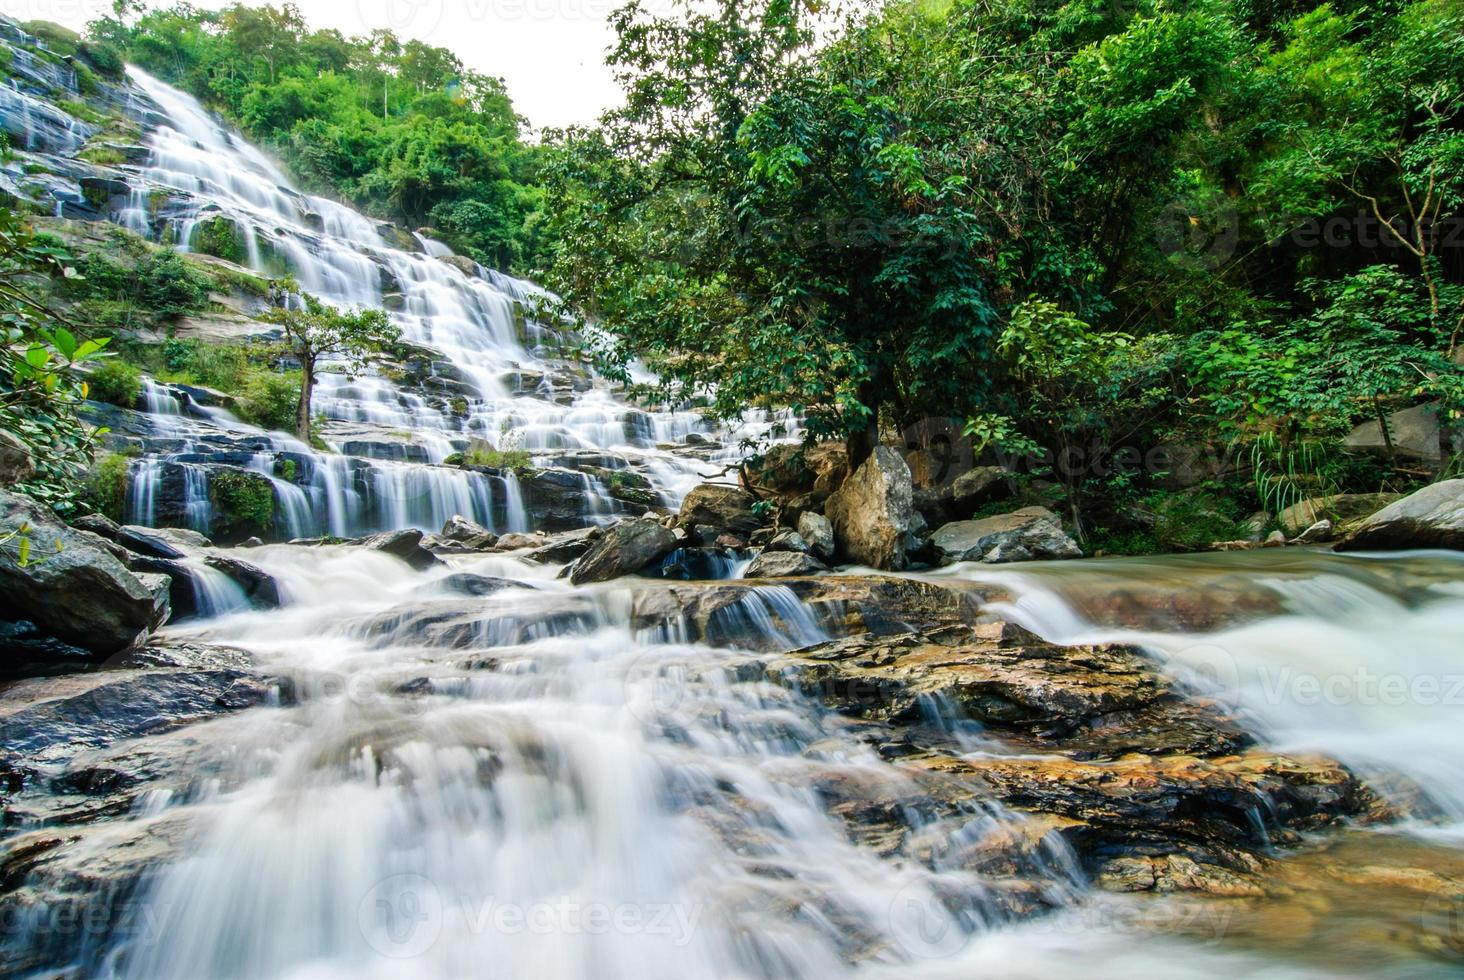 waterval mooi in Thailand foto